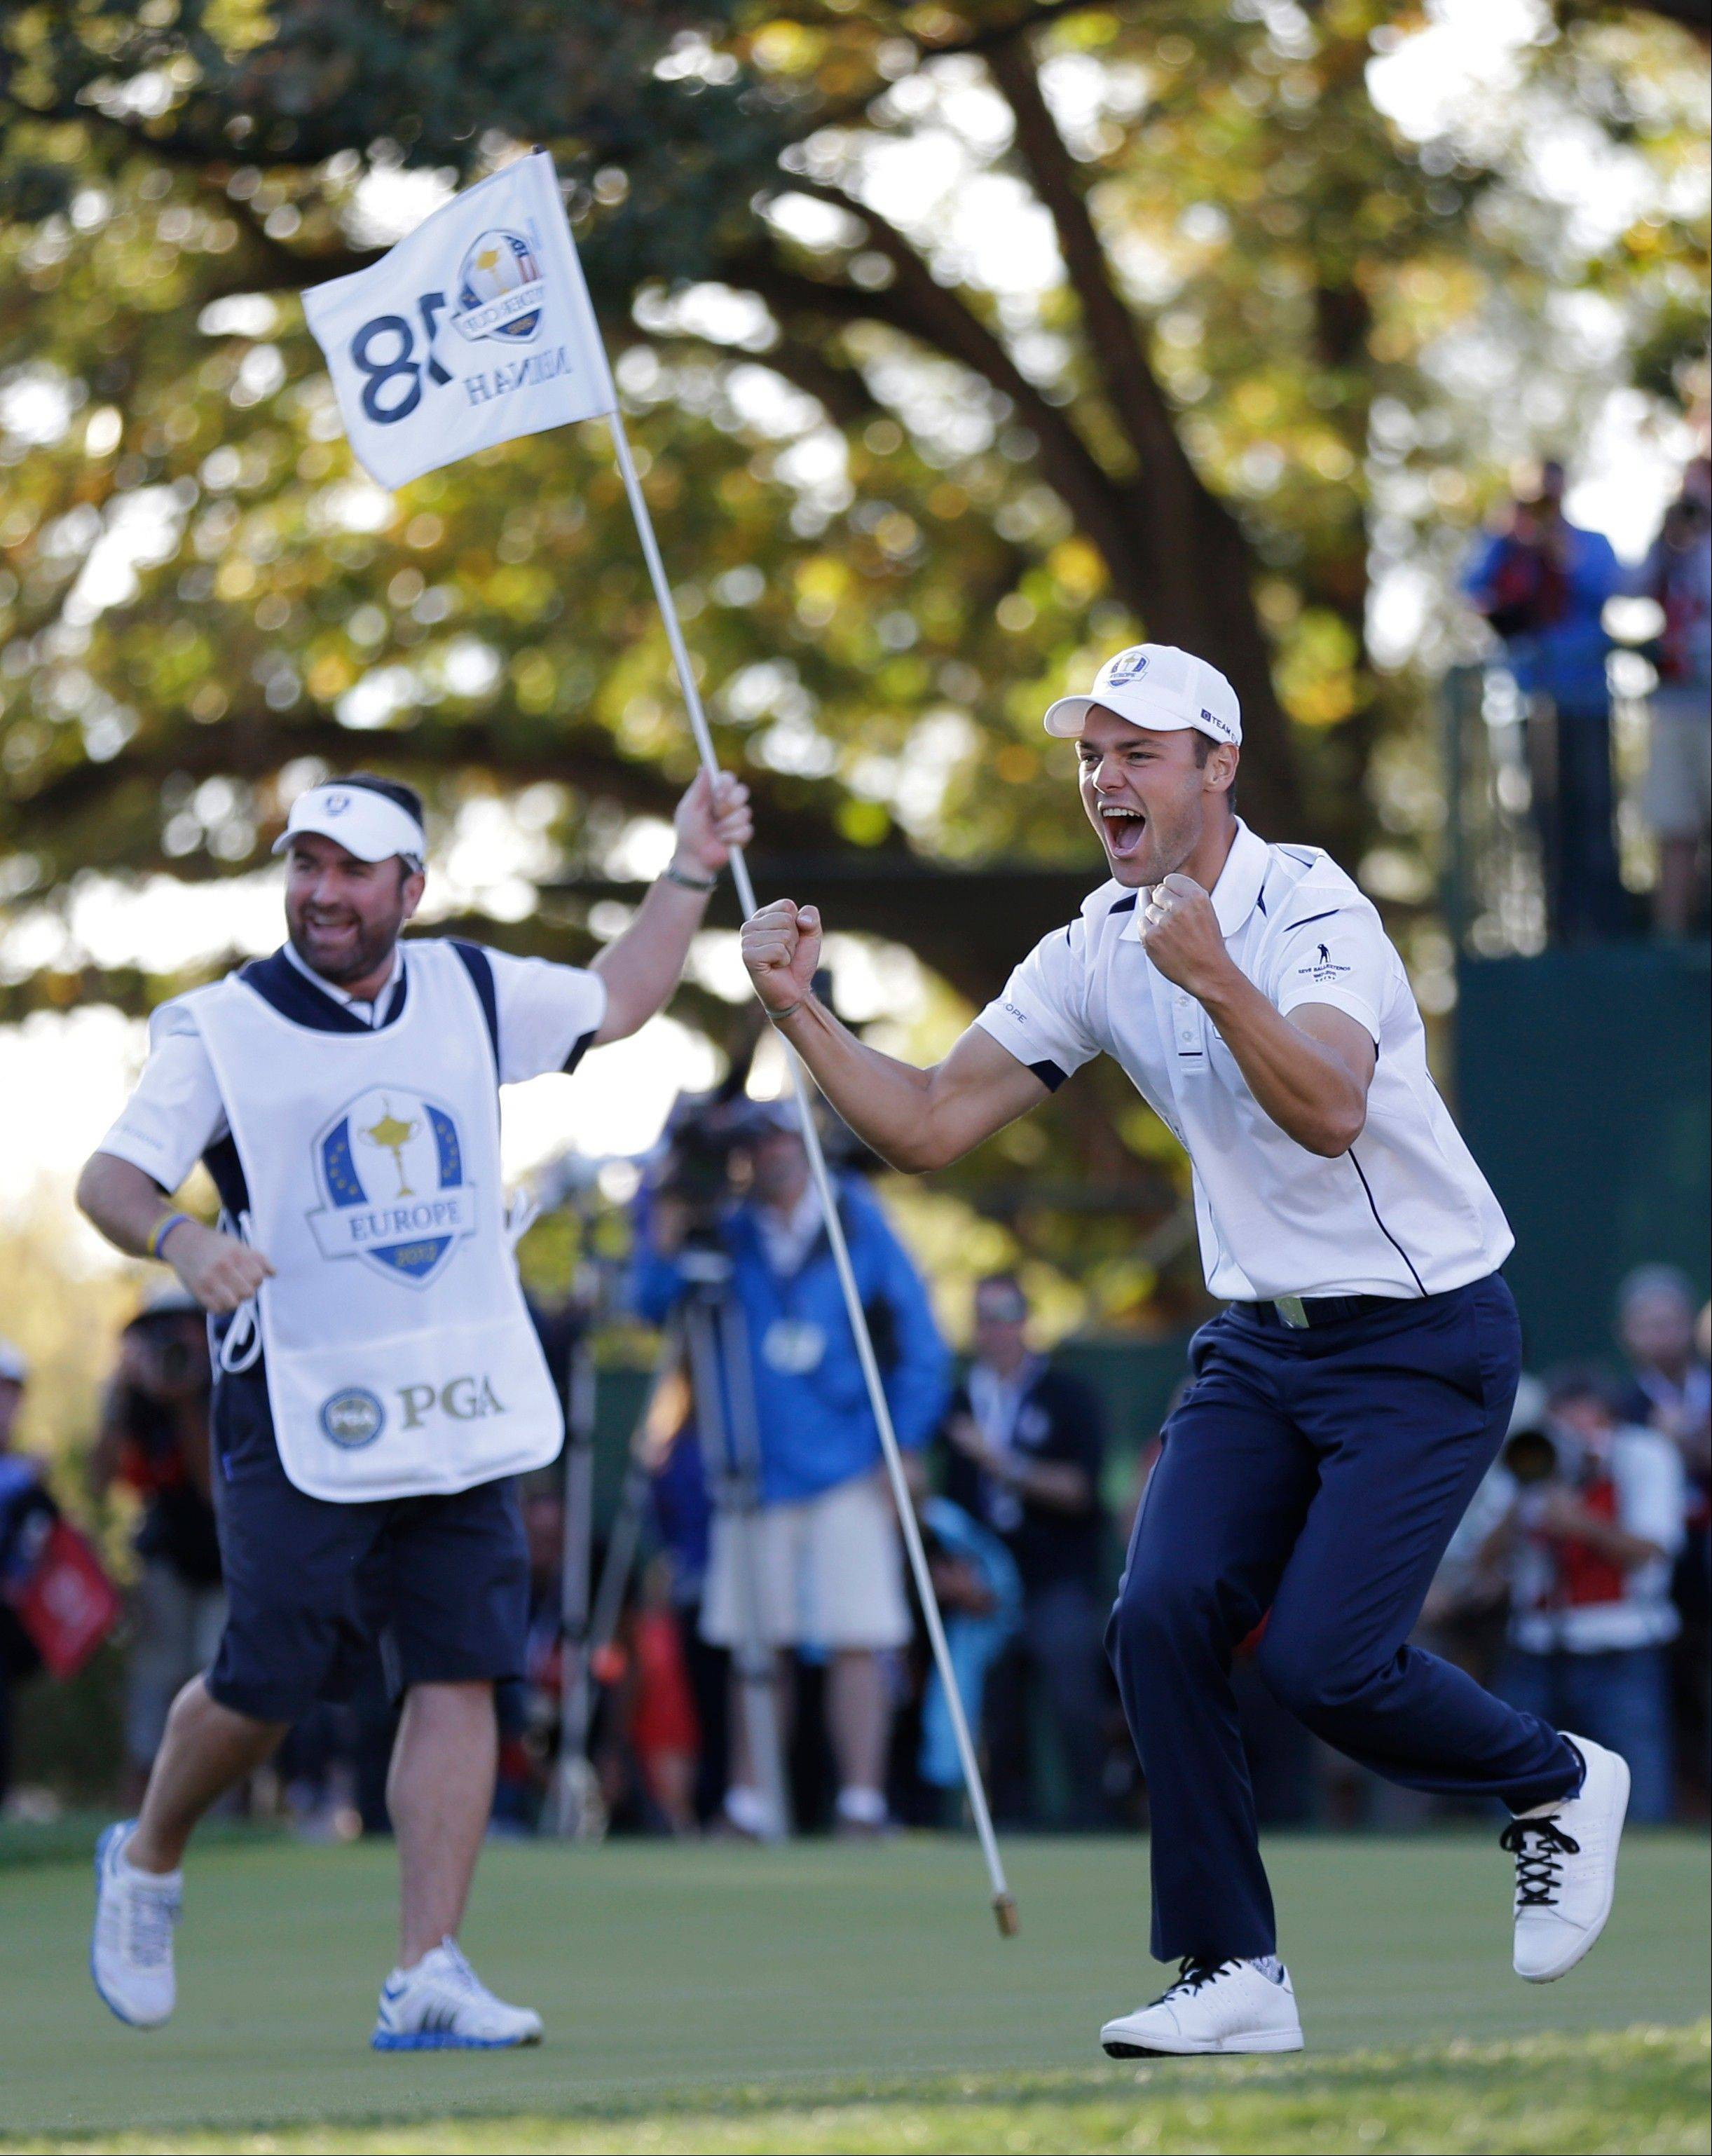 Europe's Martin Kaymer celebrating his Ryder Cup-winning putt Sunday was just one of the many memories for a special weekend at Medinah Country Club.